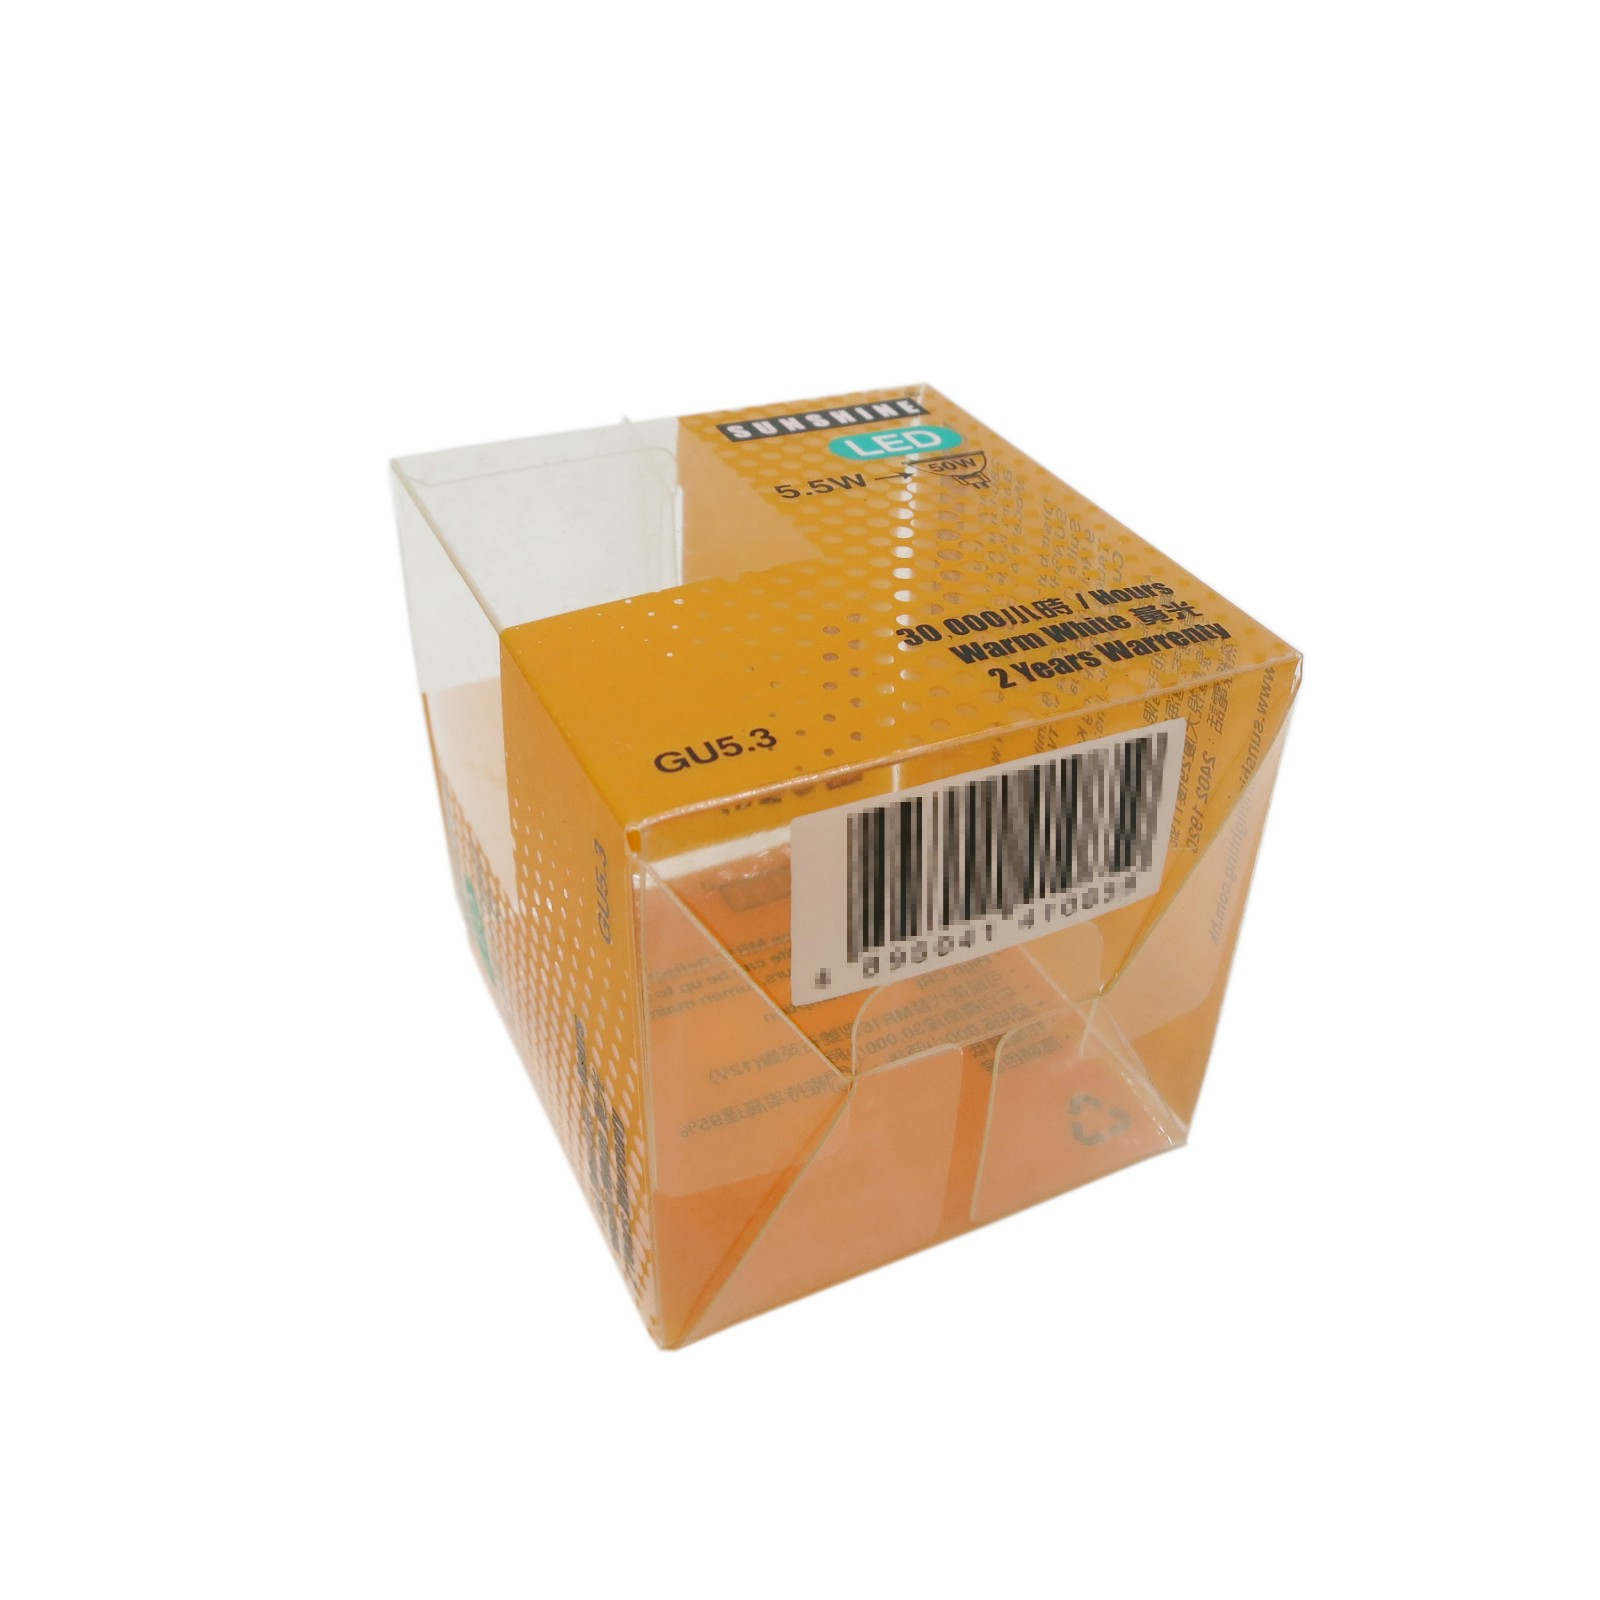 Yijianxing Plastic Products inexpensive pvc gift boxes wholesale at discount for gifts-3